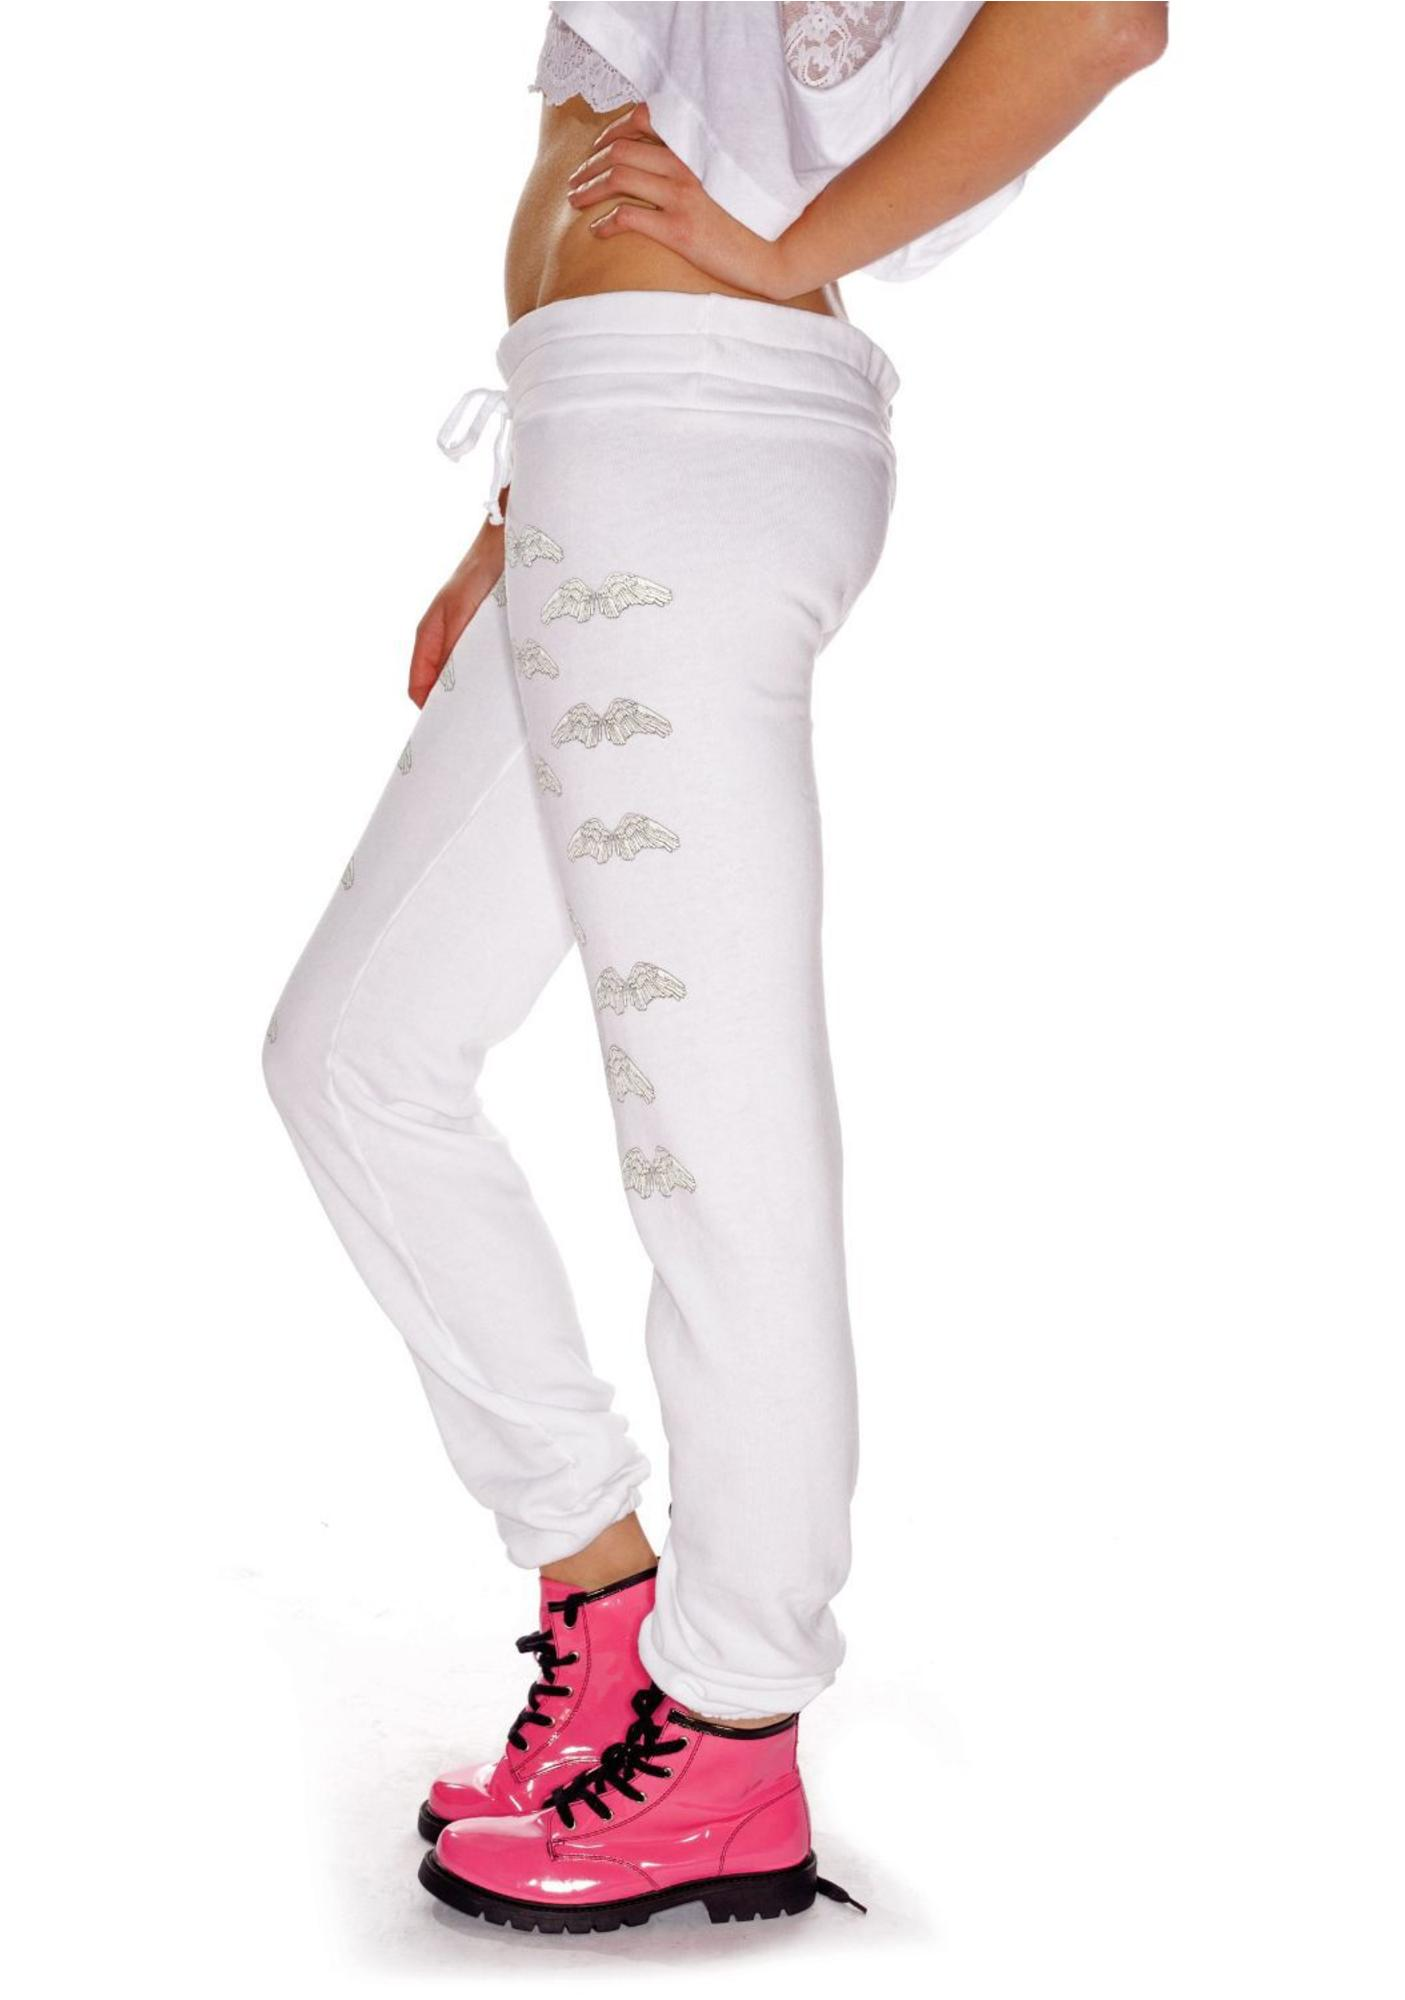 Wildfox Couture Heaven Sent Pants Skinny Sweats